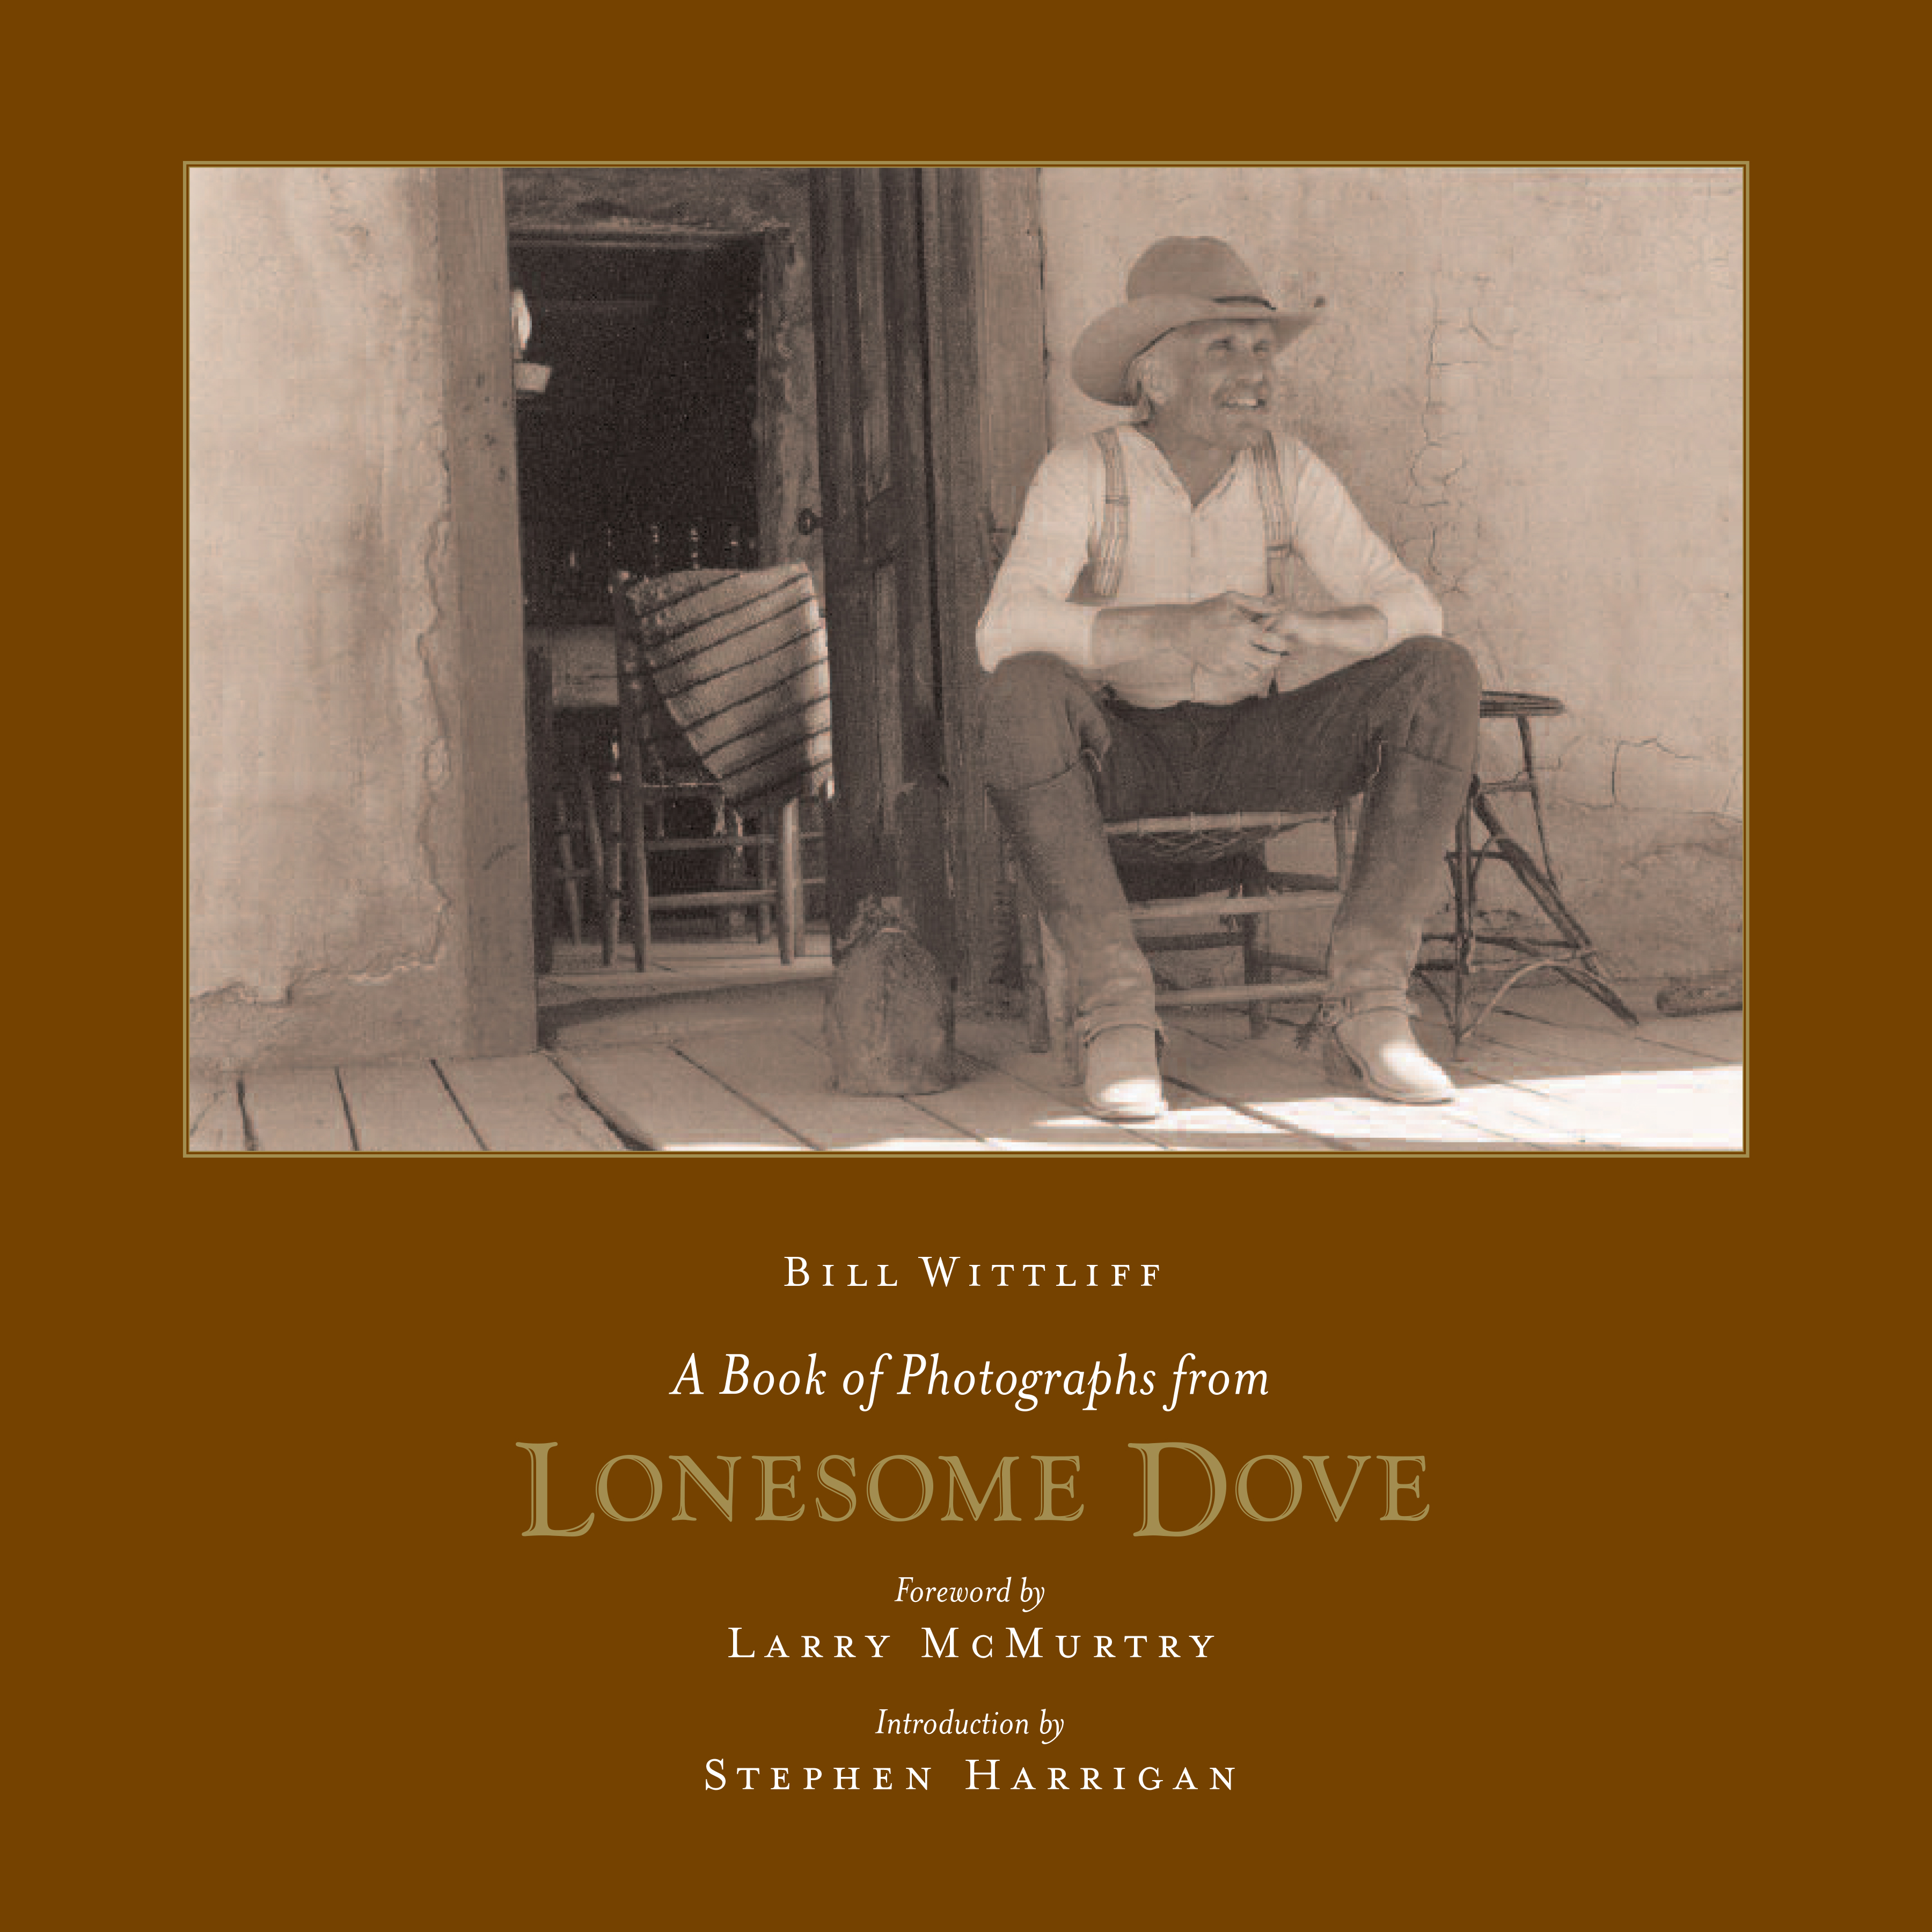 Book of Photographs from Lonesome Dove